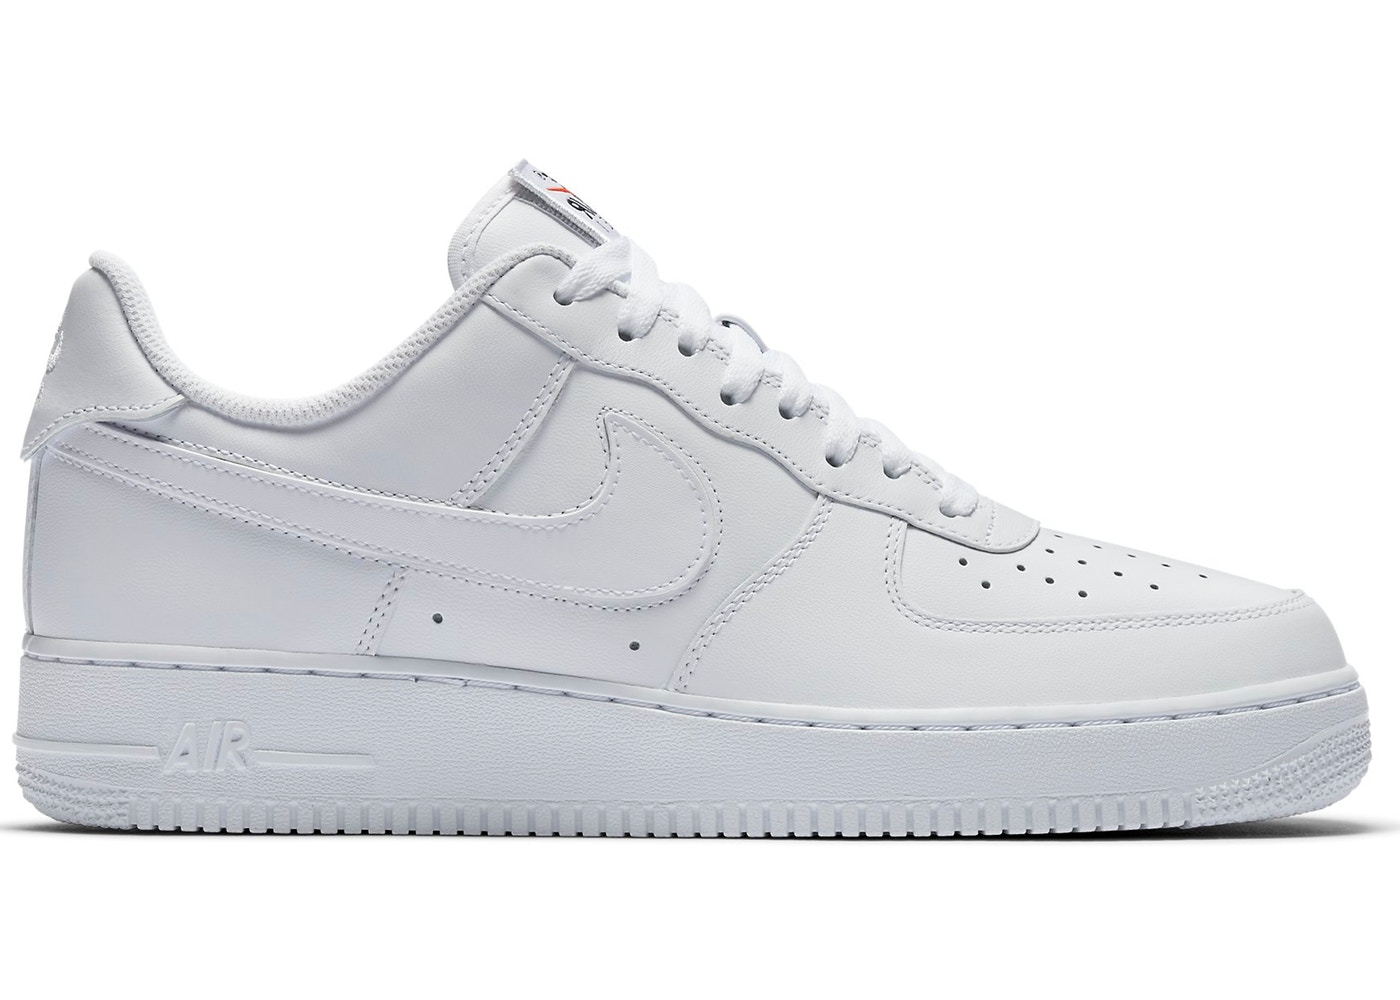 Nike Air Force 1 07 Air Force 1 Low Swoosh Pack All-Star 2018 (White) ... b184da7d5